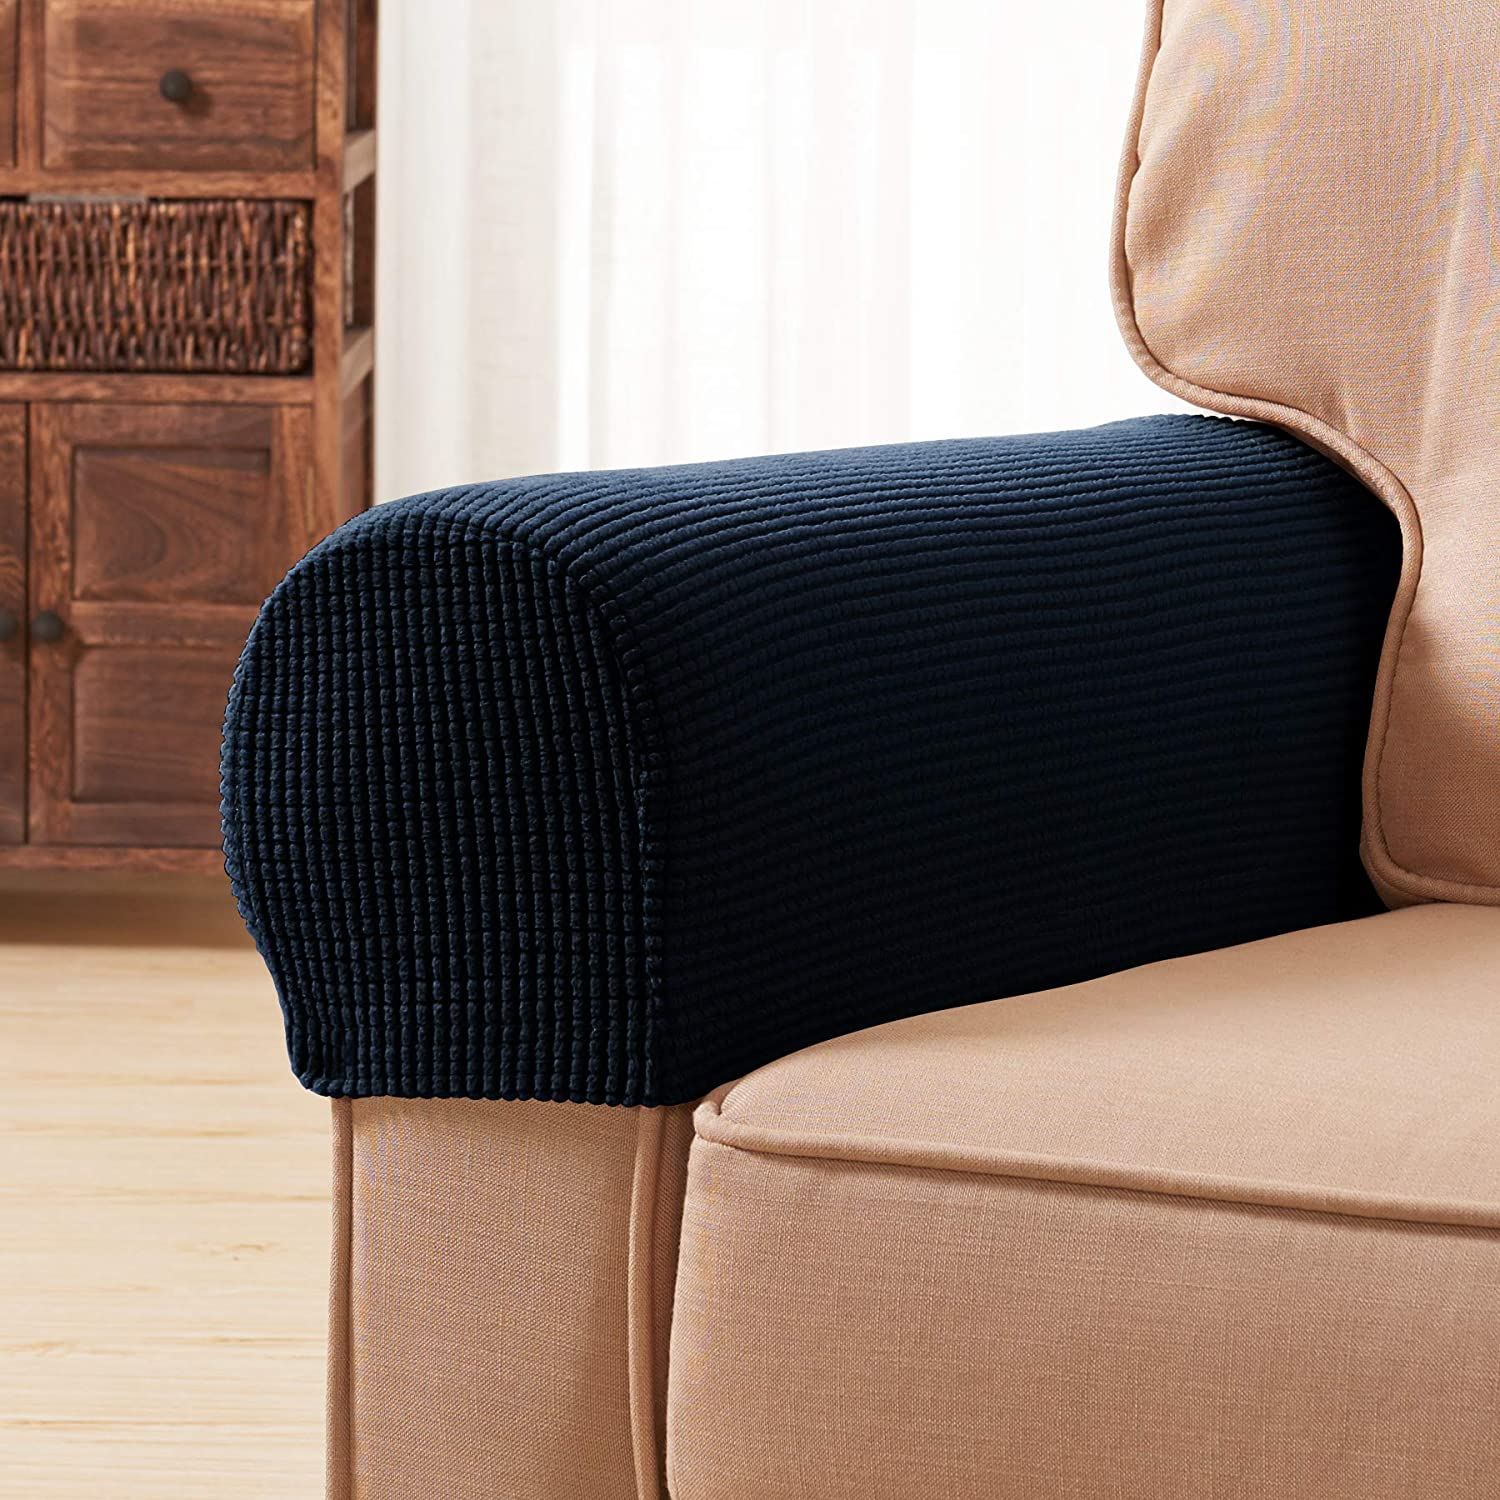 subrtex Spandex Stretch Fabric Armrest Covers Anti-Slip Furniture Protector Armchair Slipcovers for Recliner Sofa Set of 2 with Free Fixing Tools (Navy with Twist Pins)